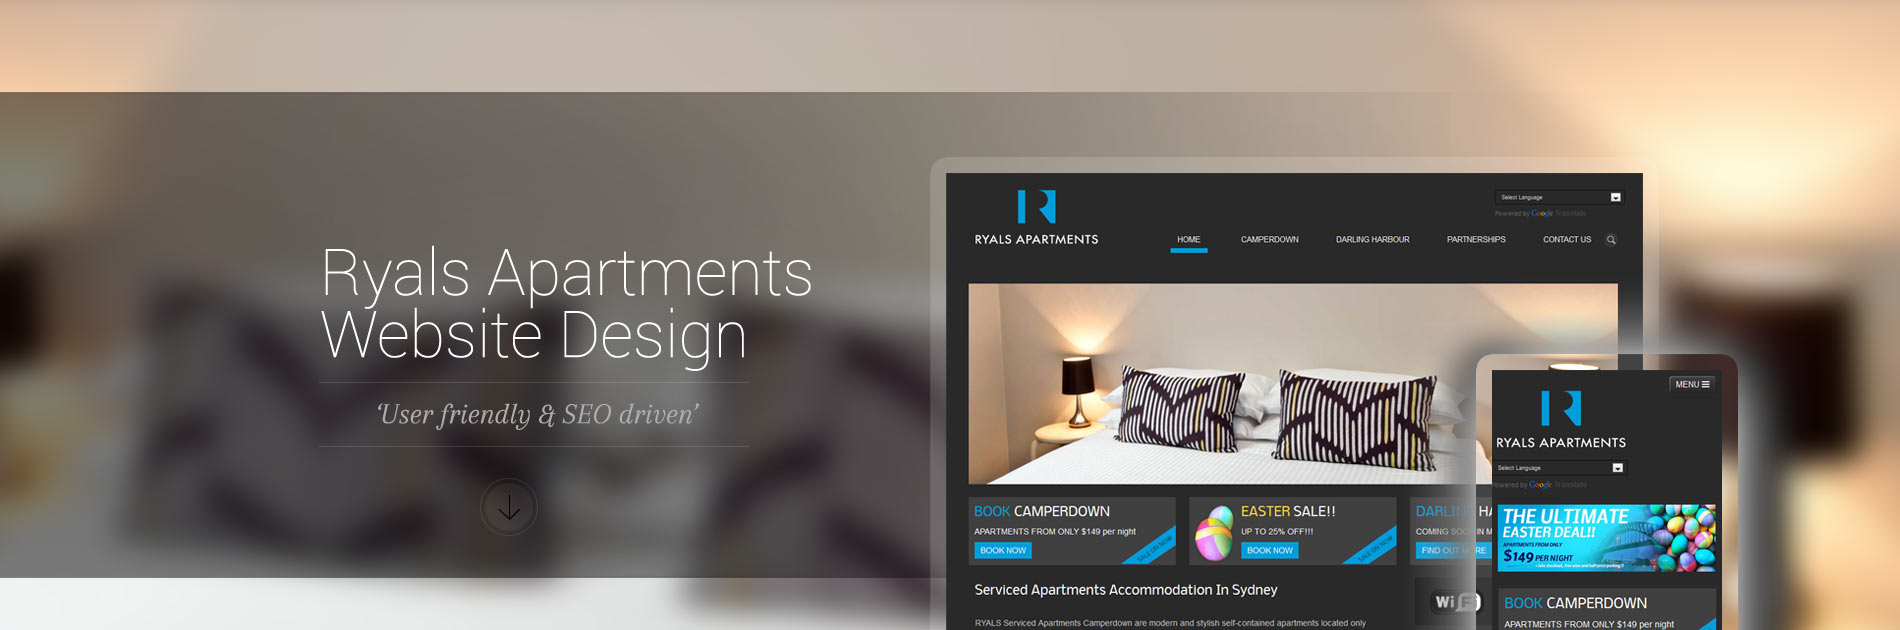 web design ryals apartments sydney - Apartment Website Design